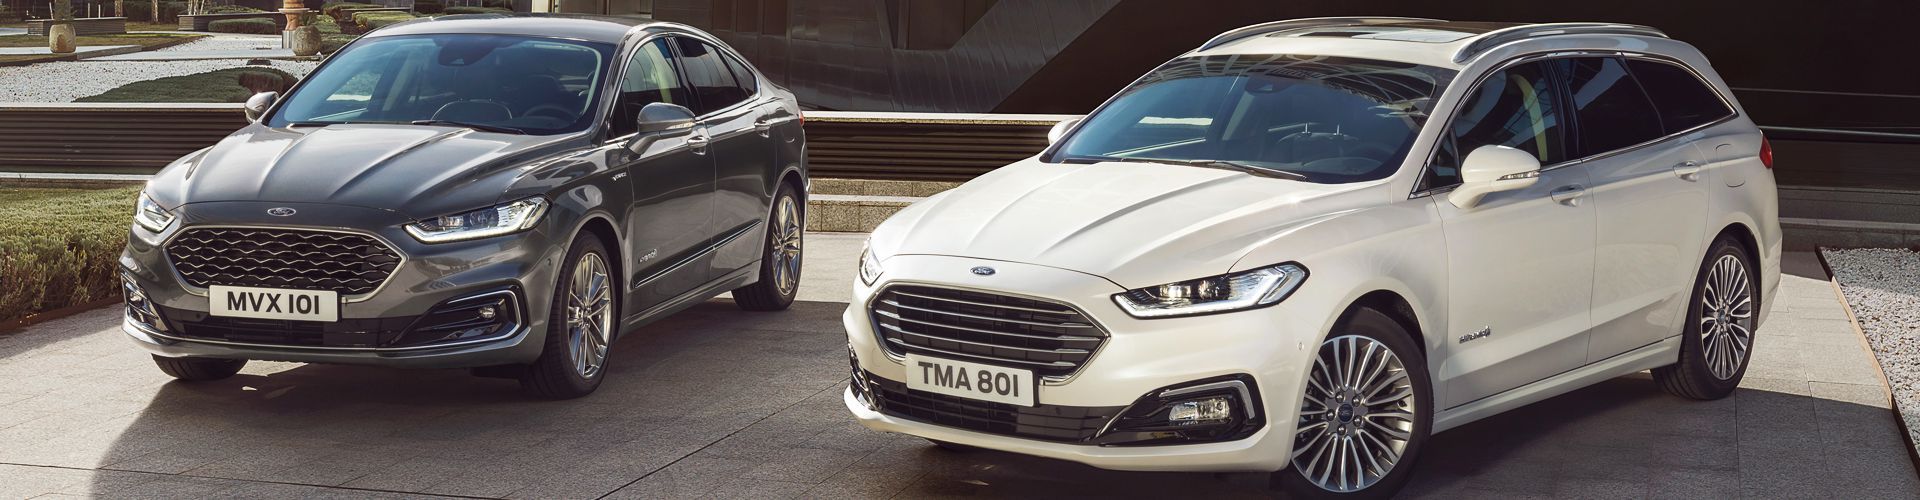 Ford Mondeo - Liapis Cars Bros